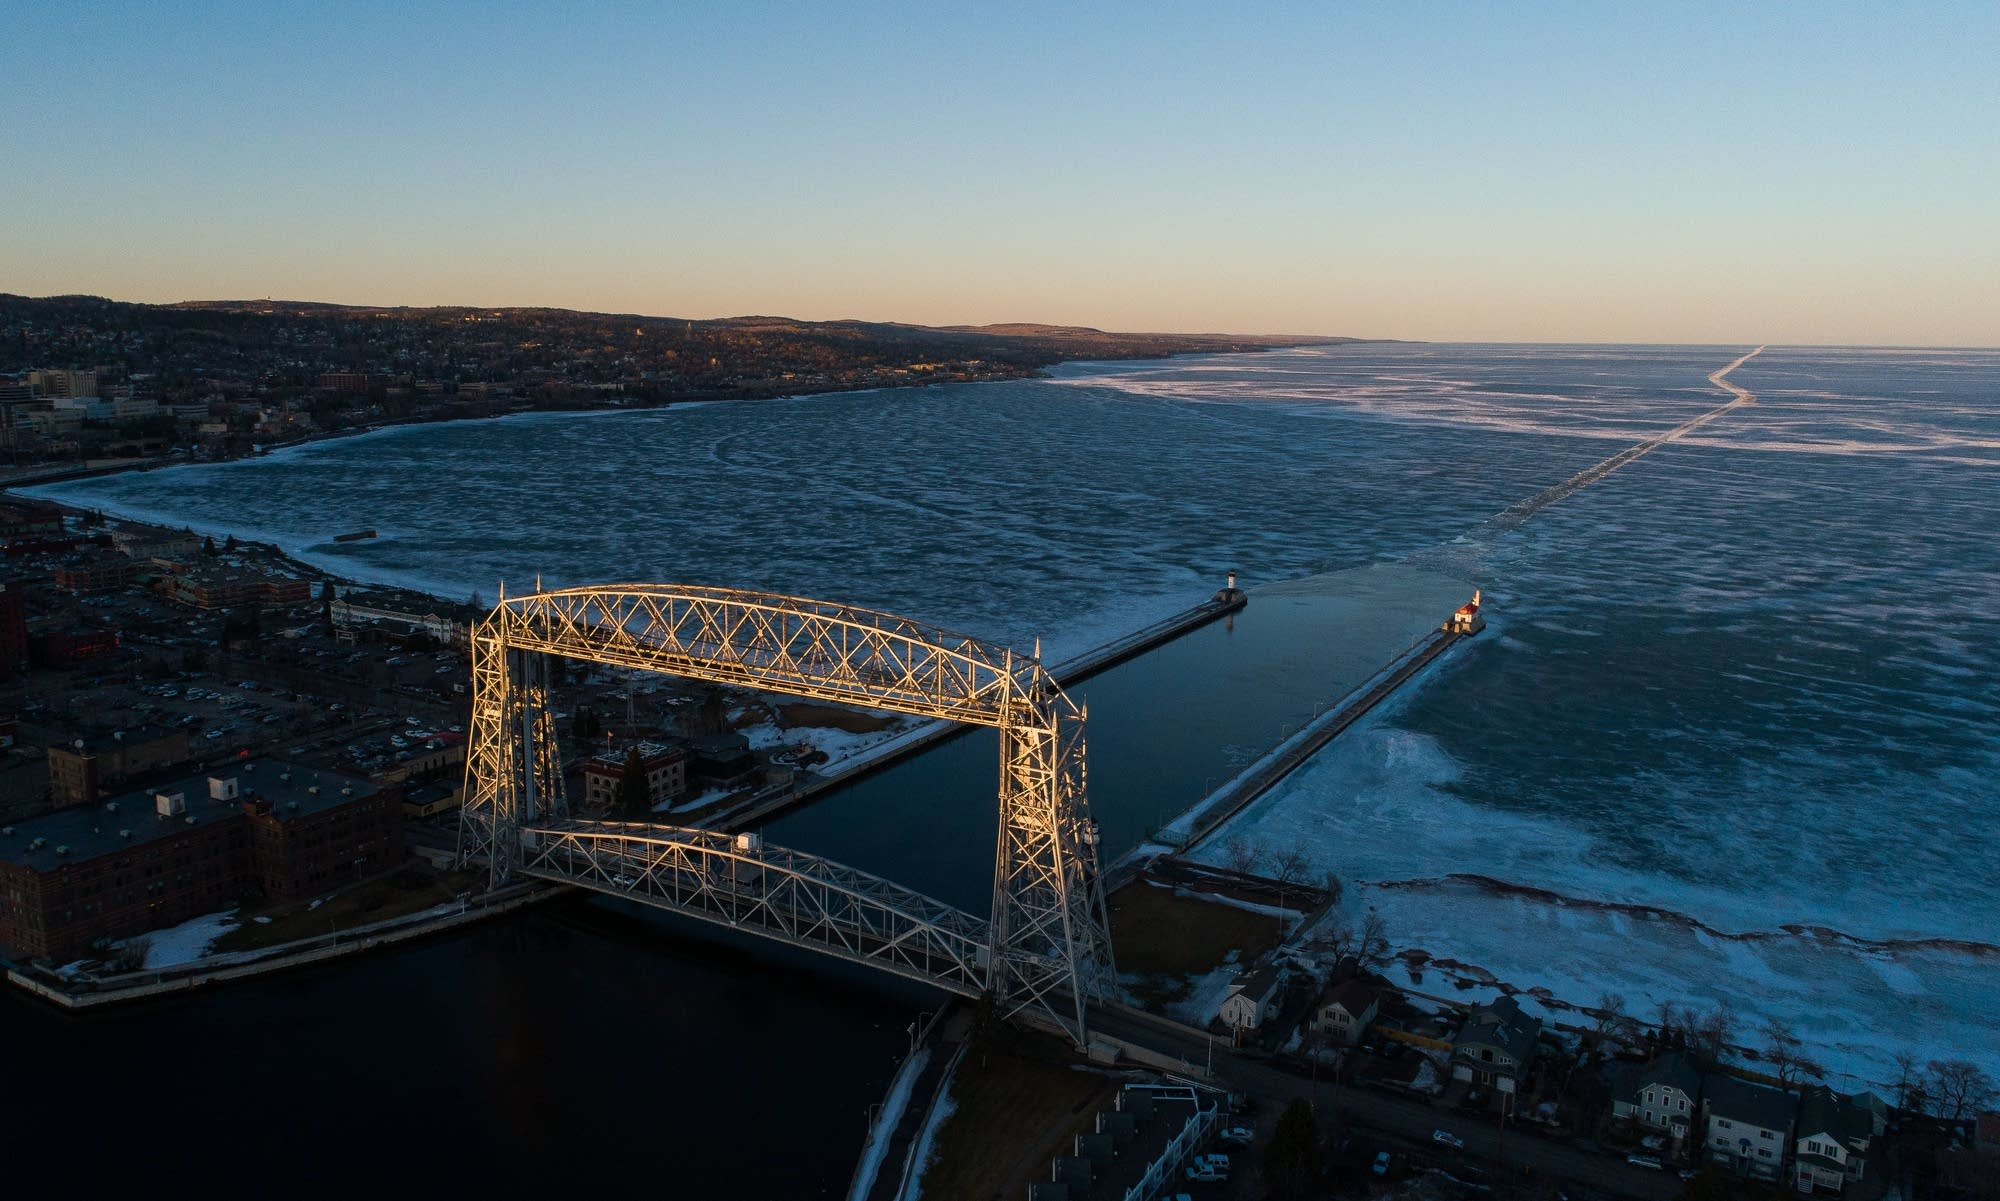 The sun sets on Duluth's aerial lift bridge and the route left in the ice.